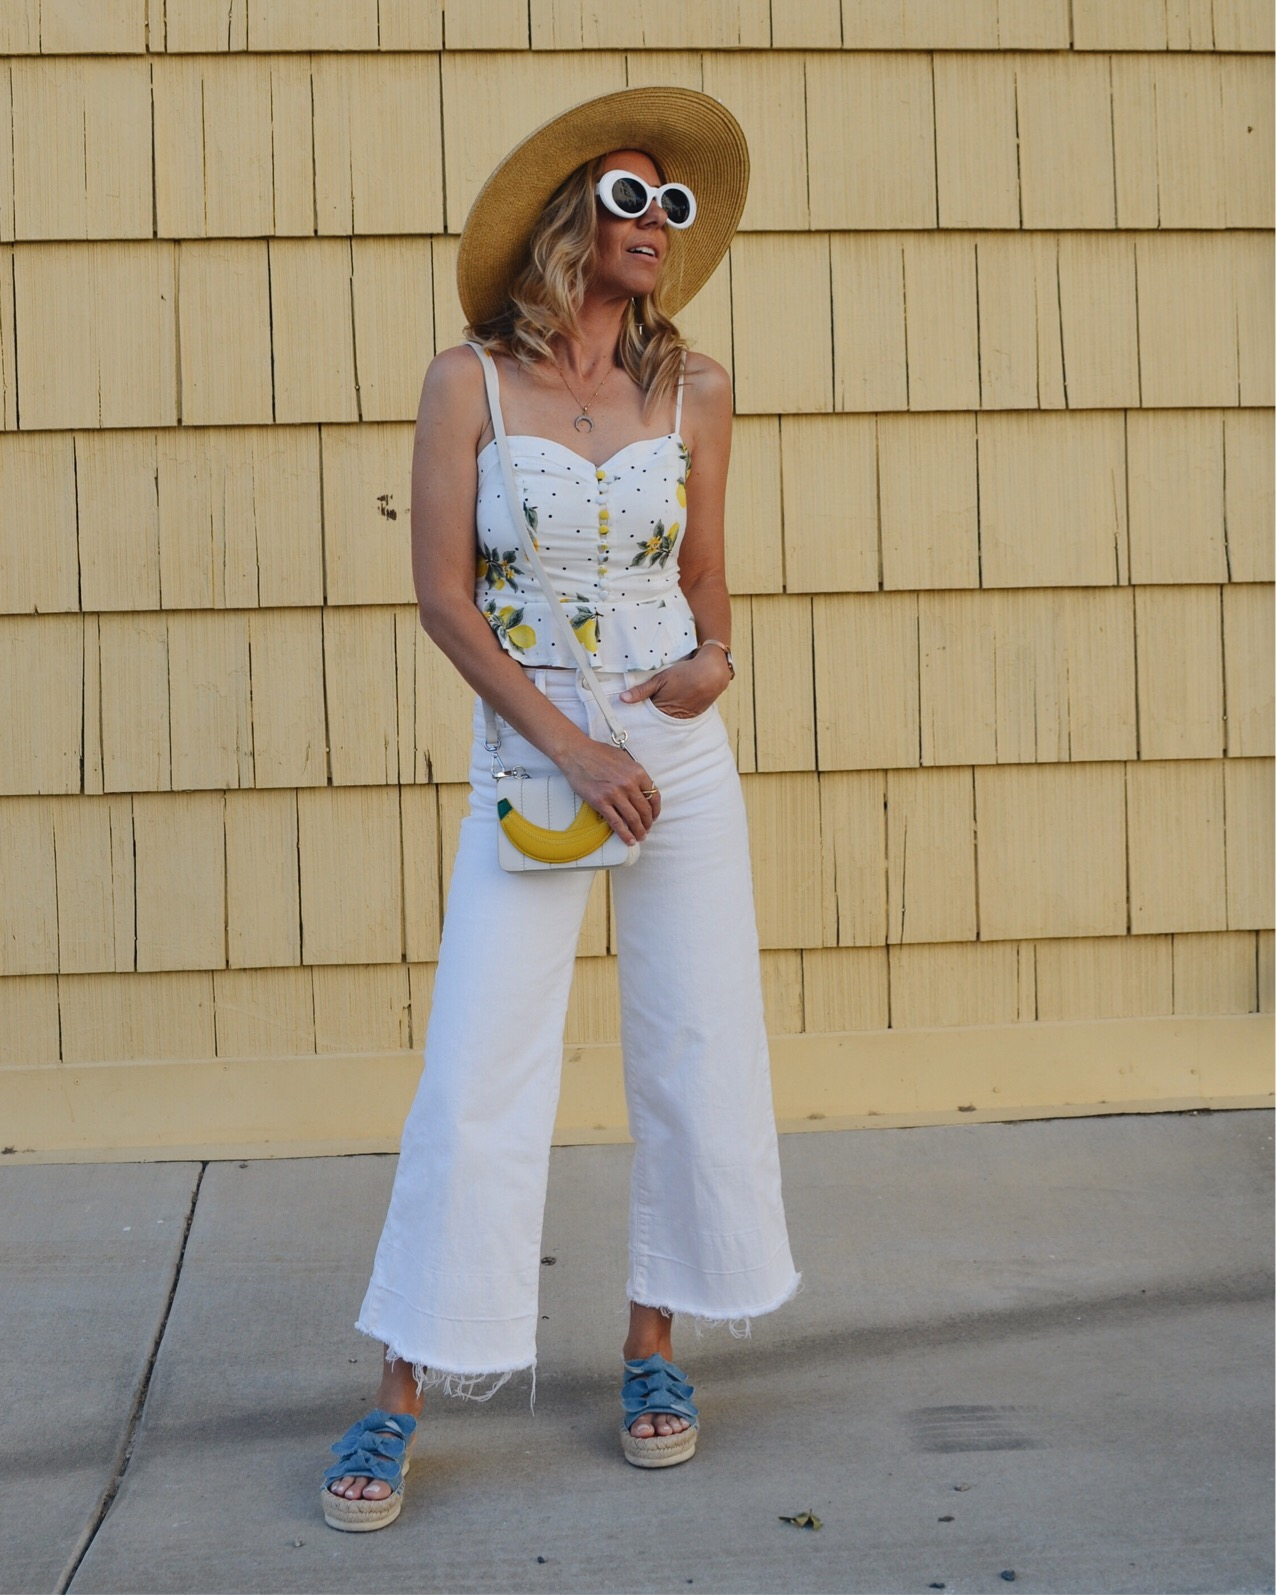 THE MUST HAVE SHOE TREND- PLATFORMS- Jaclyn De Leon Style + espadrille slip on denim sandals + white culottes + lemon top + fruit inspired tank + straw hat + retro style sunglasses + bananna handbag + casual street style + what to wear this summer